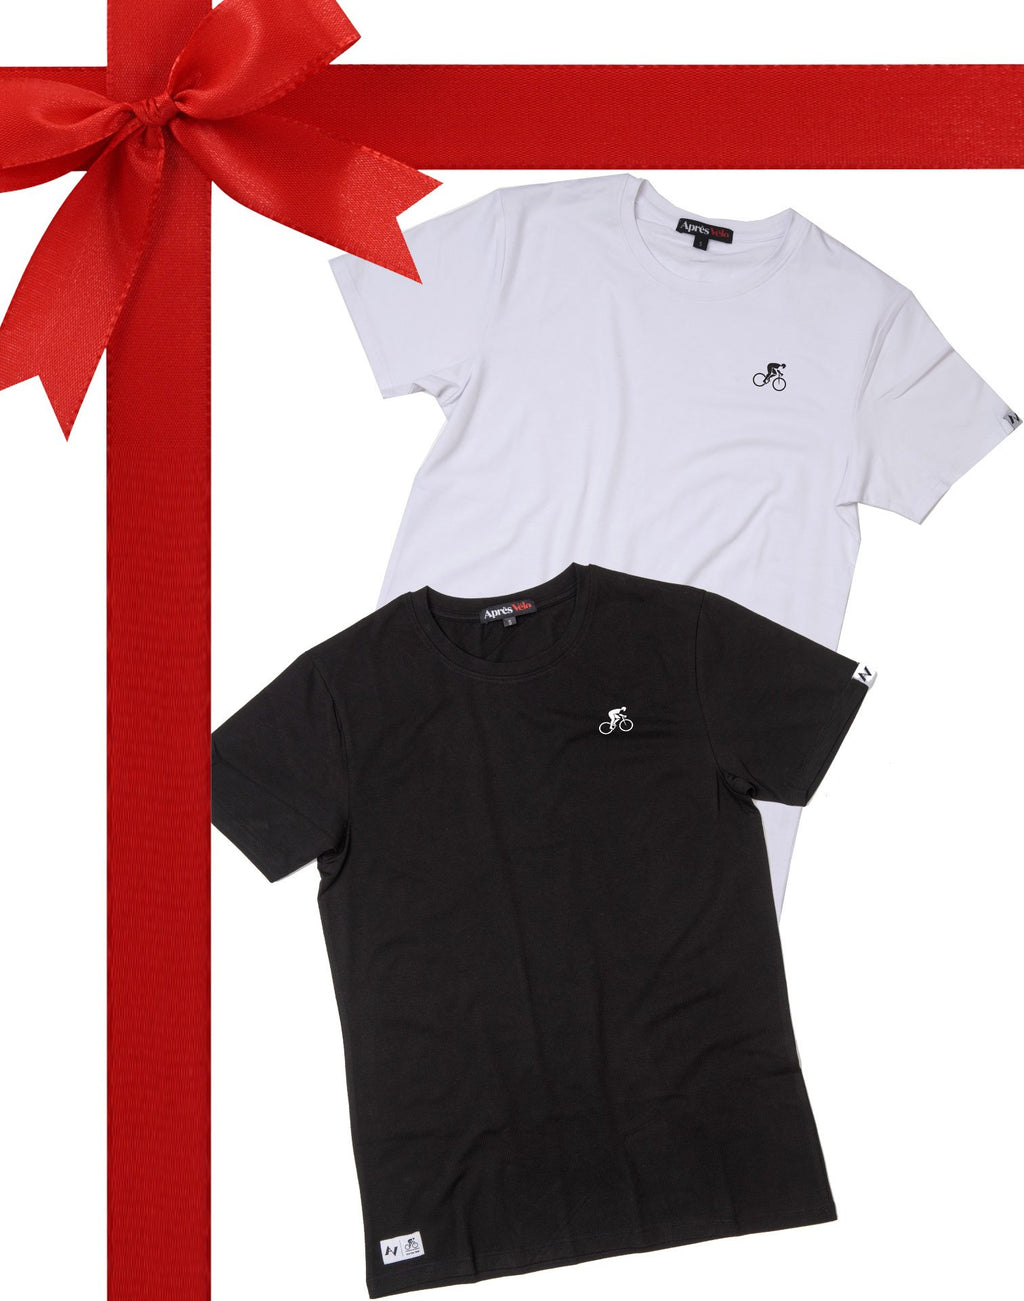 Mens Cycliste Giftwrapped Bundle